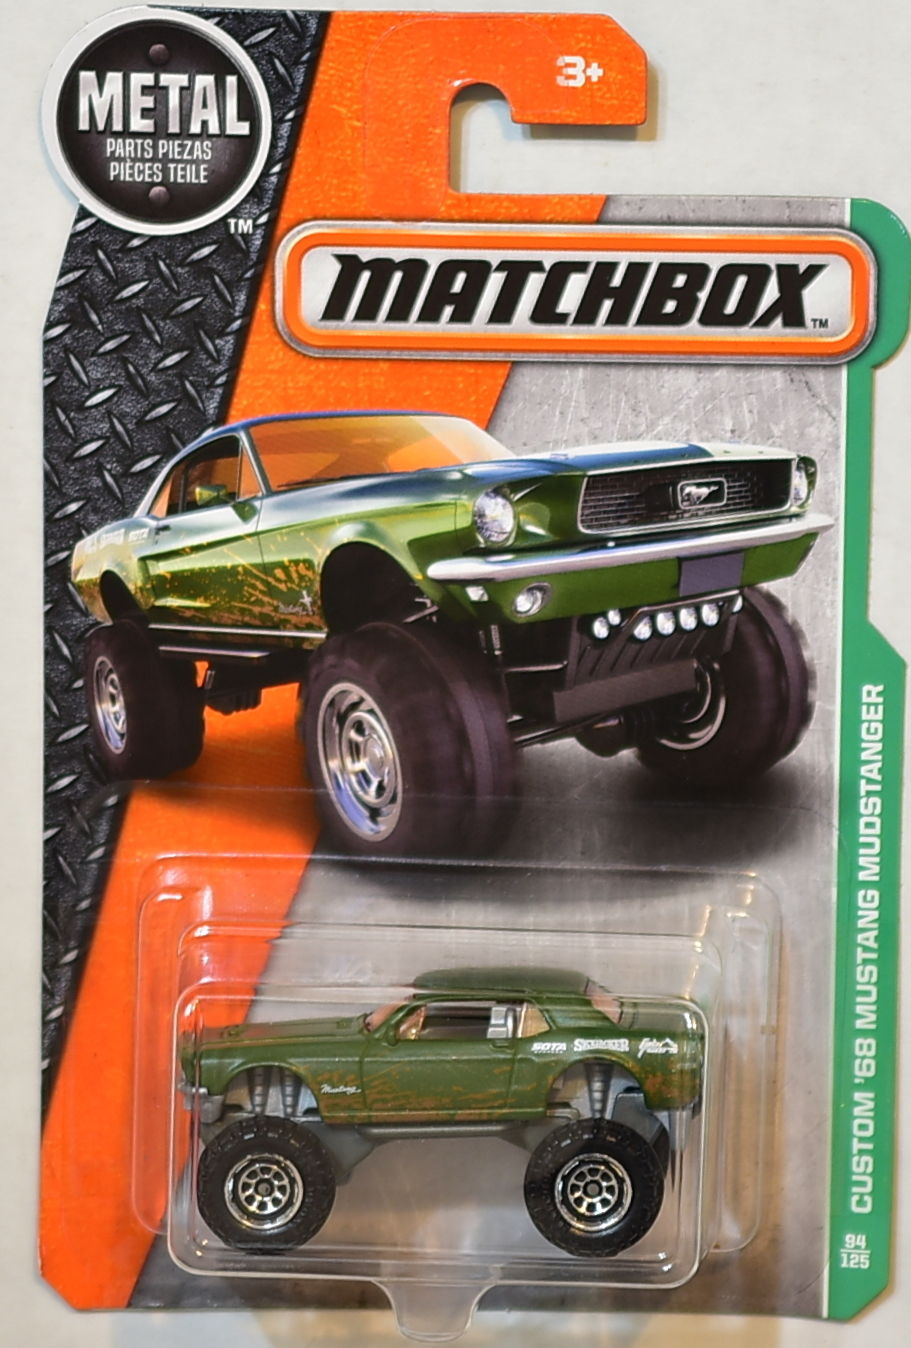 MATCHBOX 2016 METAL PARTS PIEZAS CUSTOM '68 MUSTANG MUDSTANGER E+